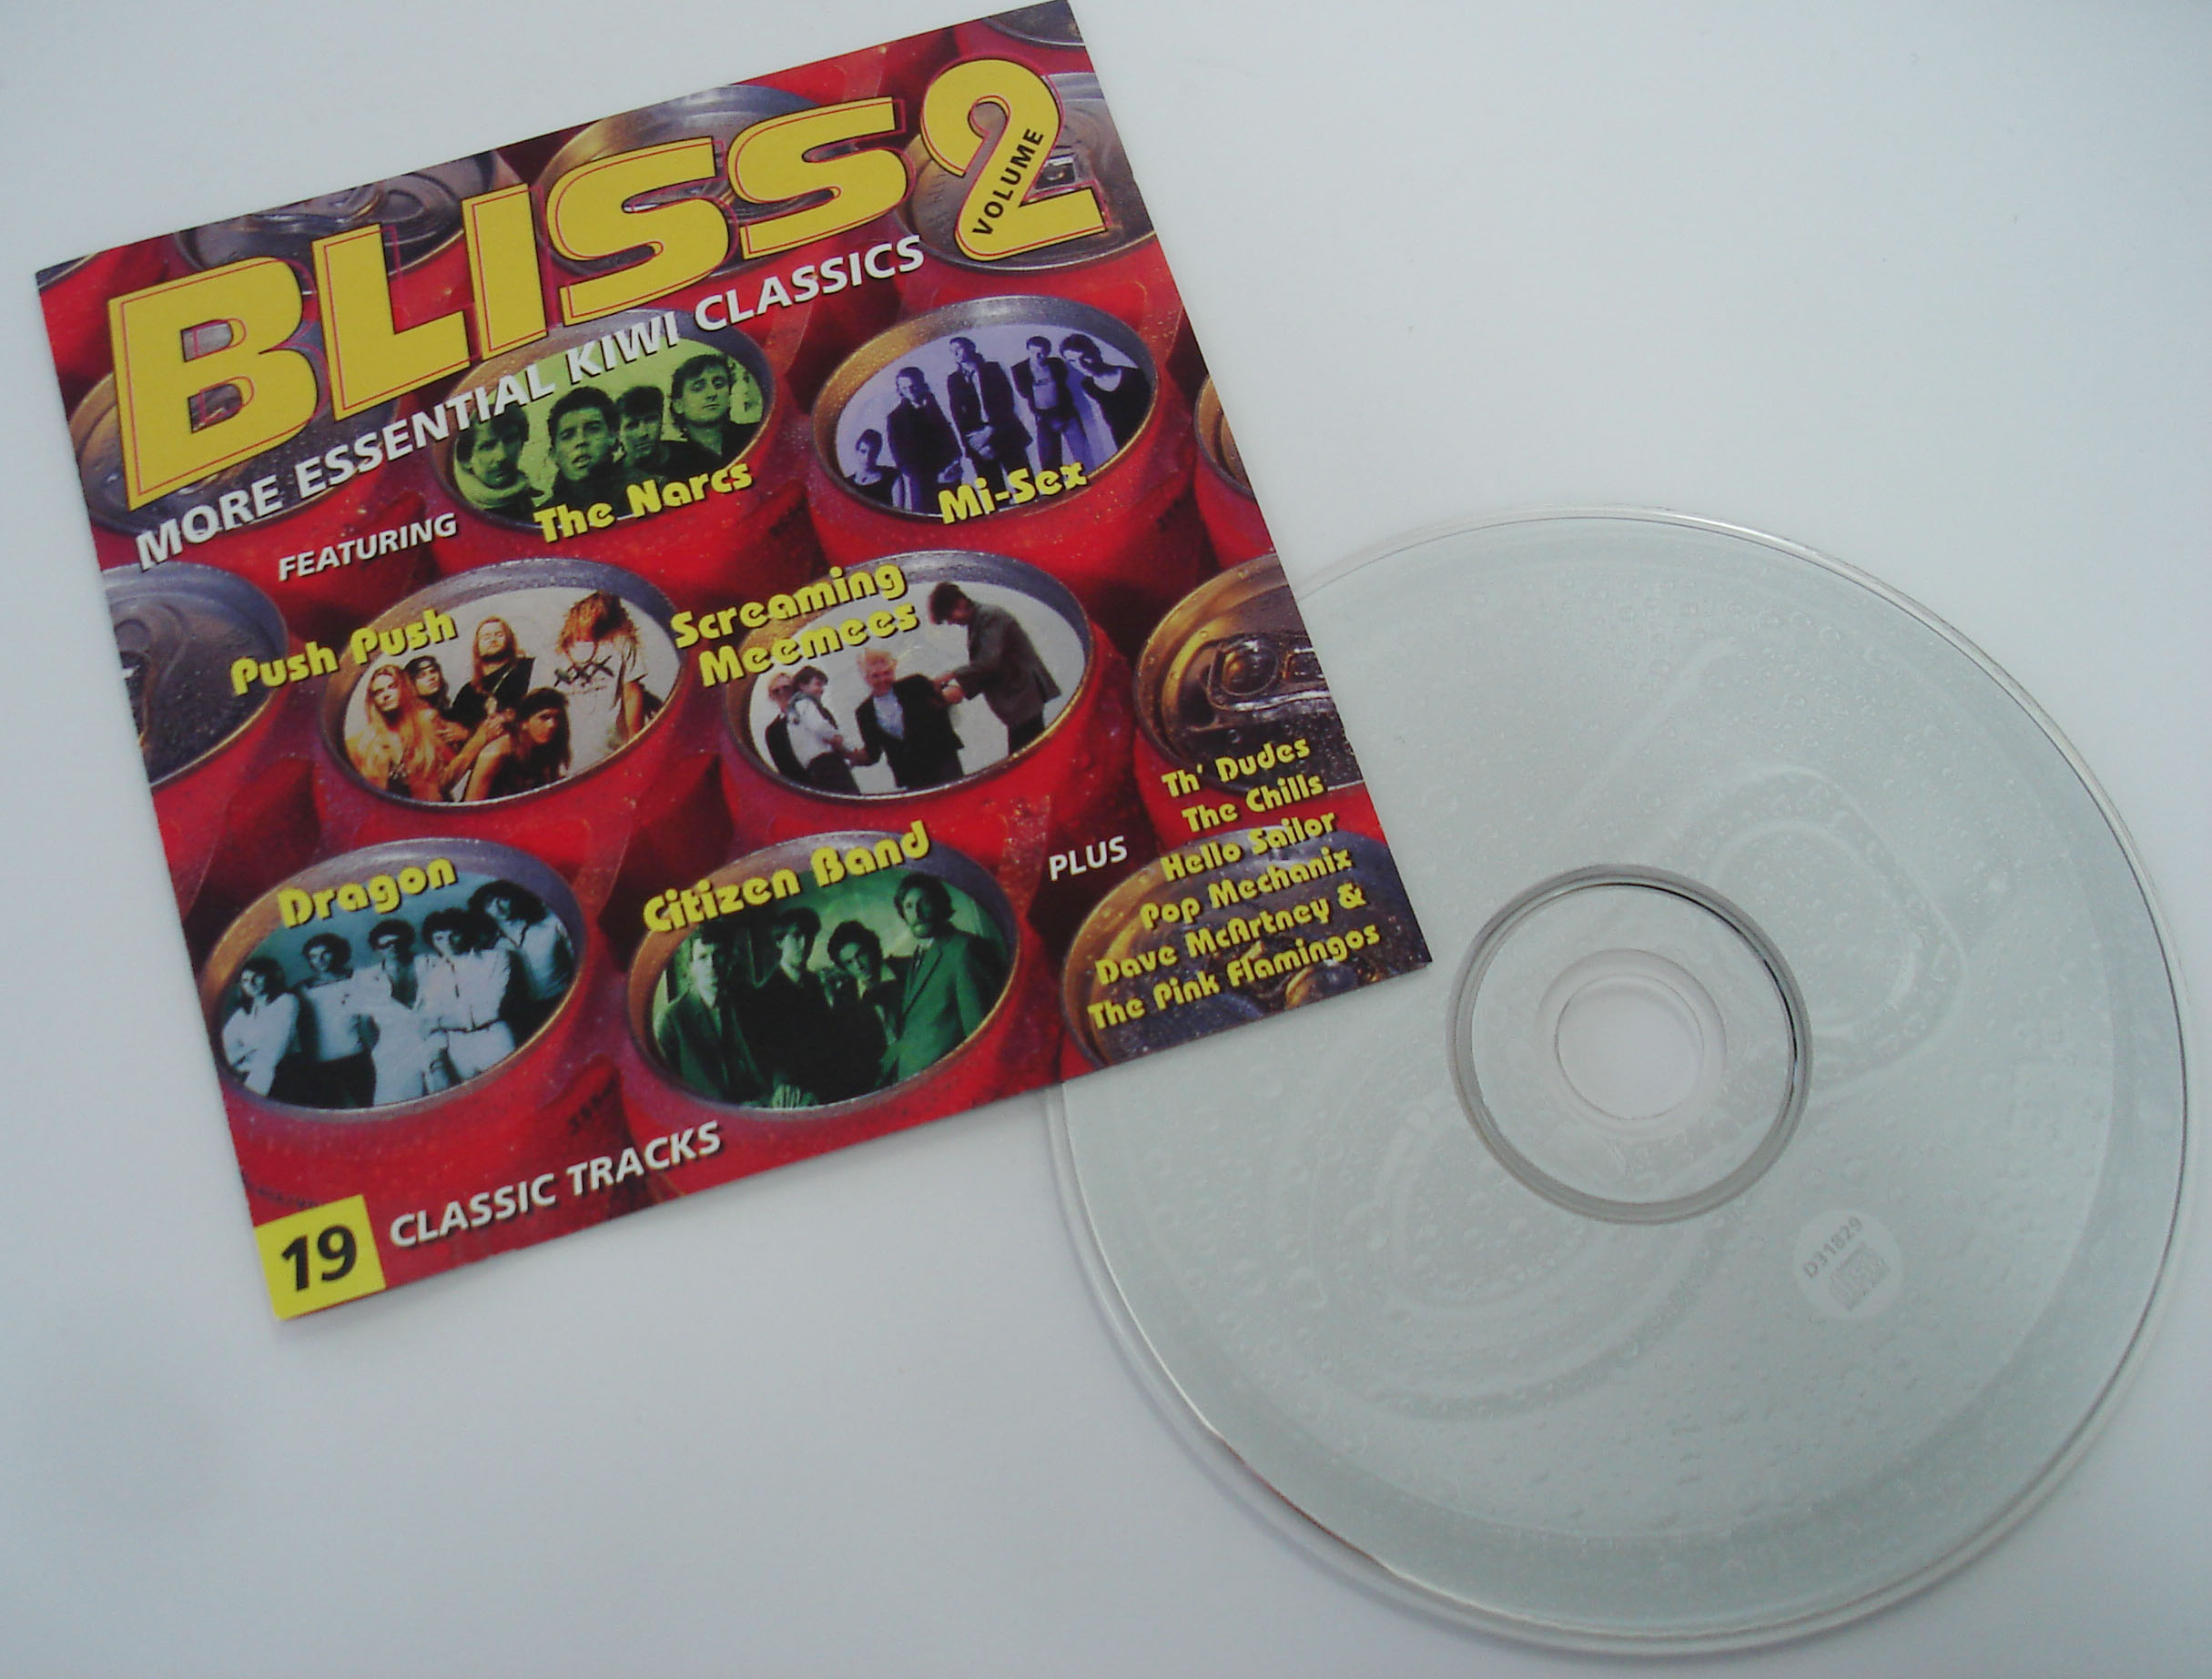 VARIOUS ARTISTS - BLISS 2: MORE ESSENTIAL KIWI CLASSICS - COMPILATION